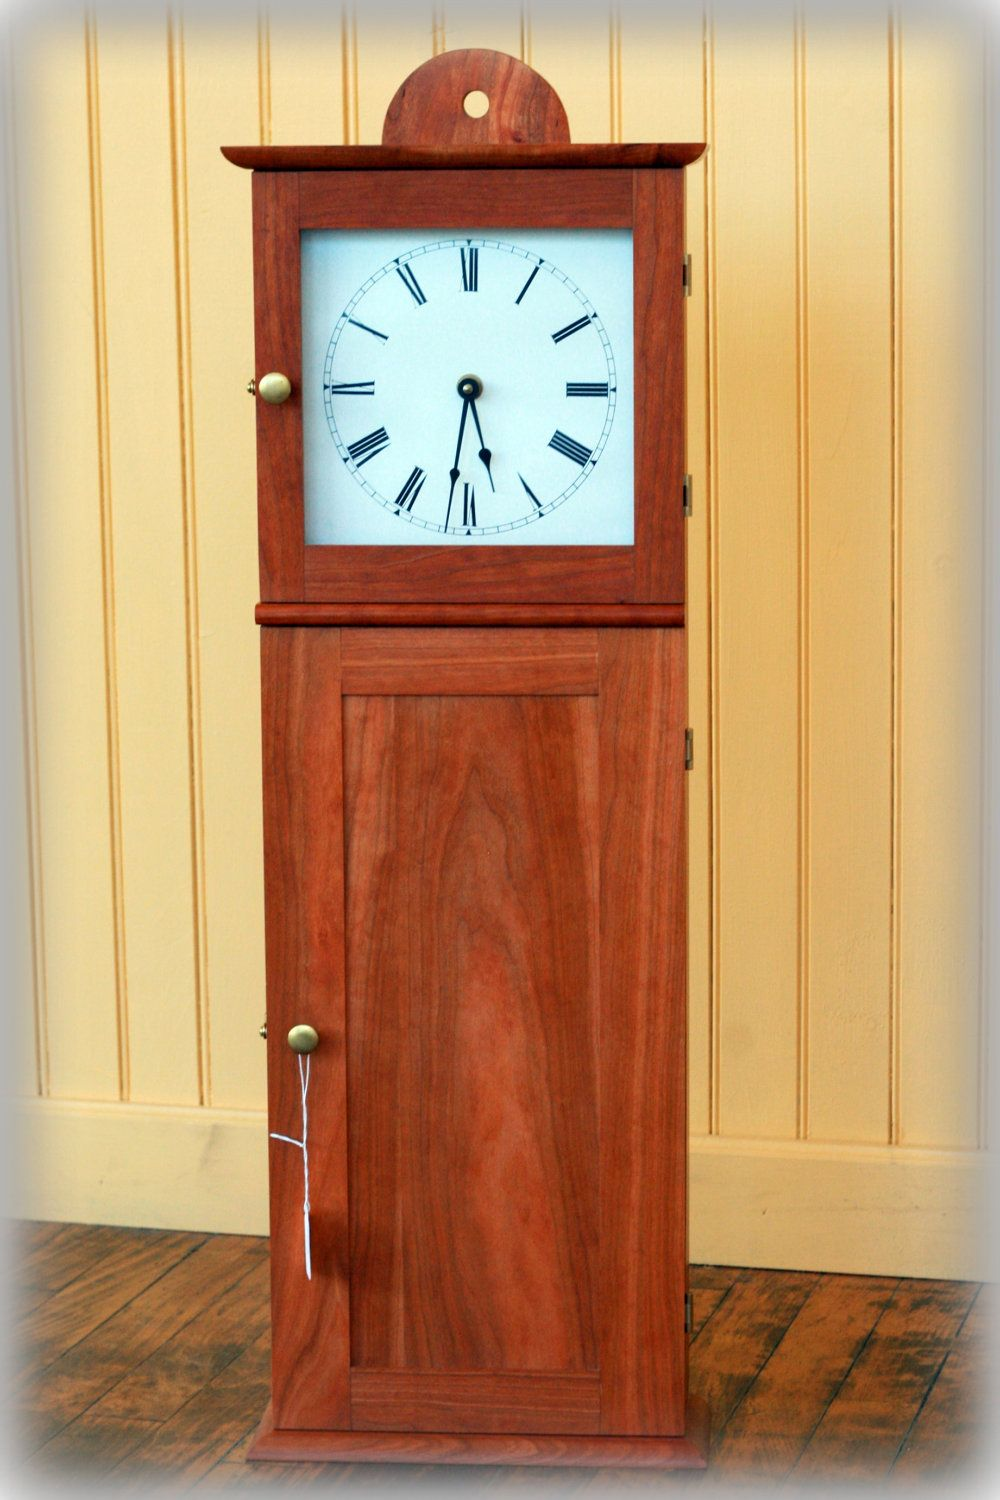 Arts and crafts mantle clock - Shaker Wall Clock By Tkellyfurniture On Etsy Via Etsy